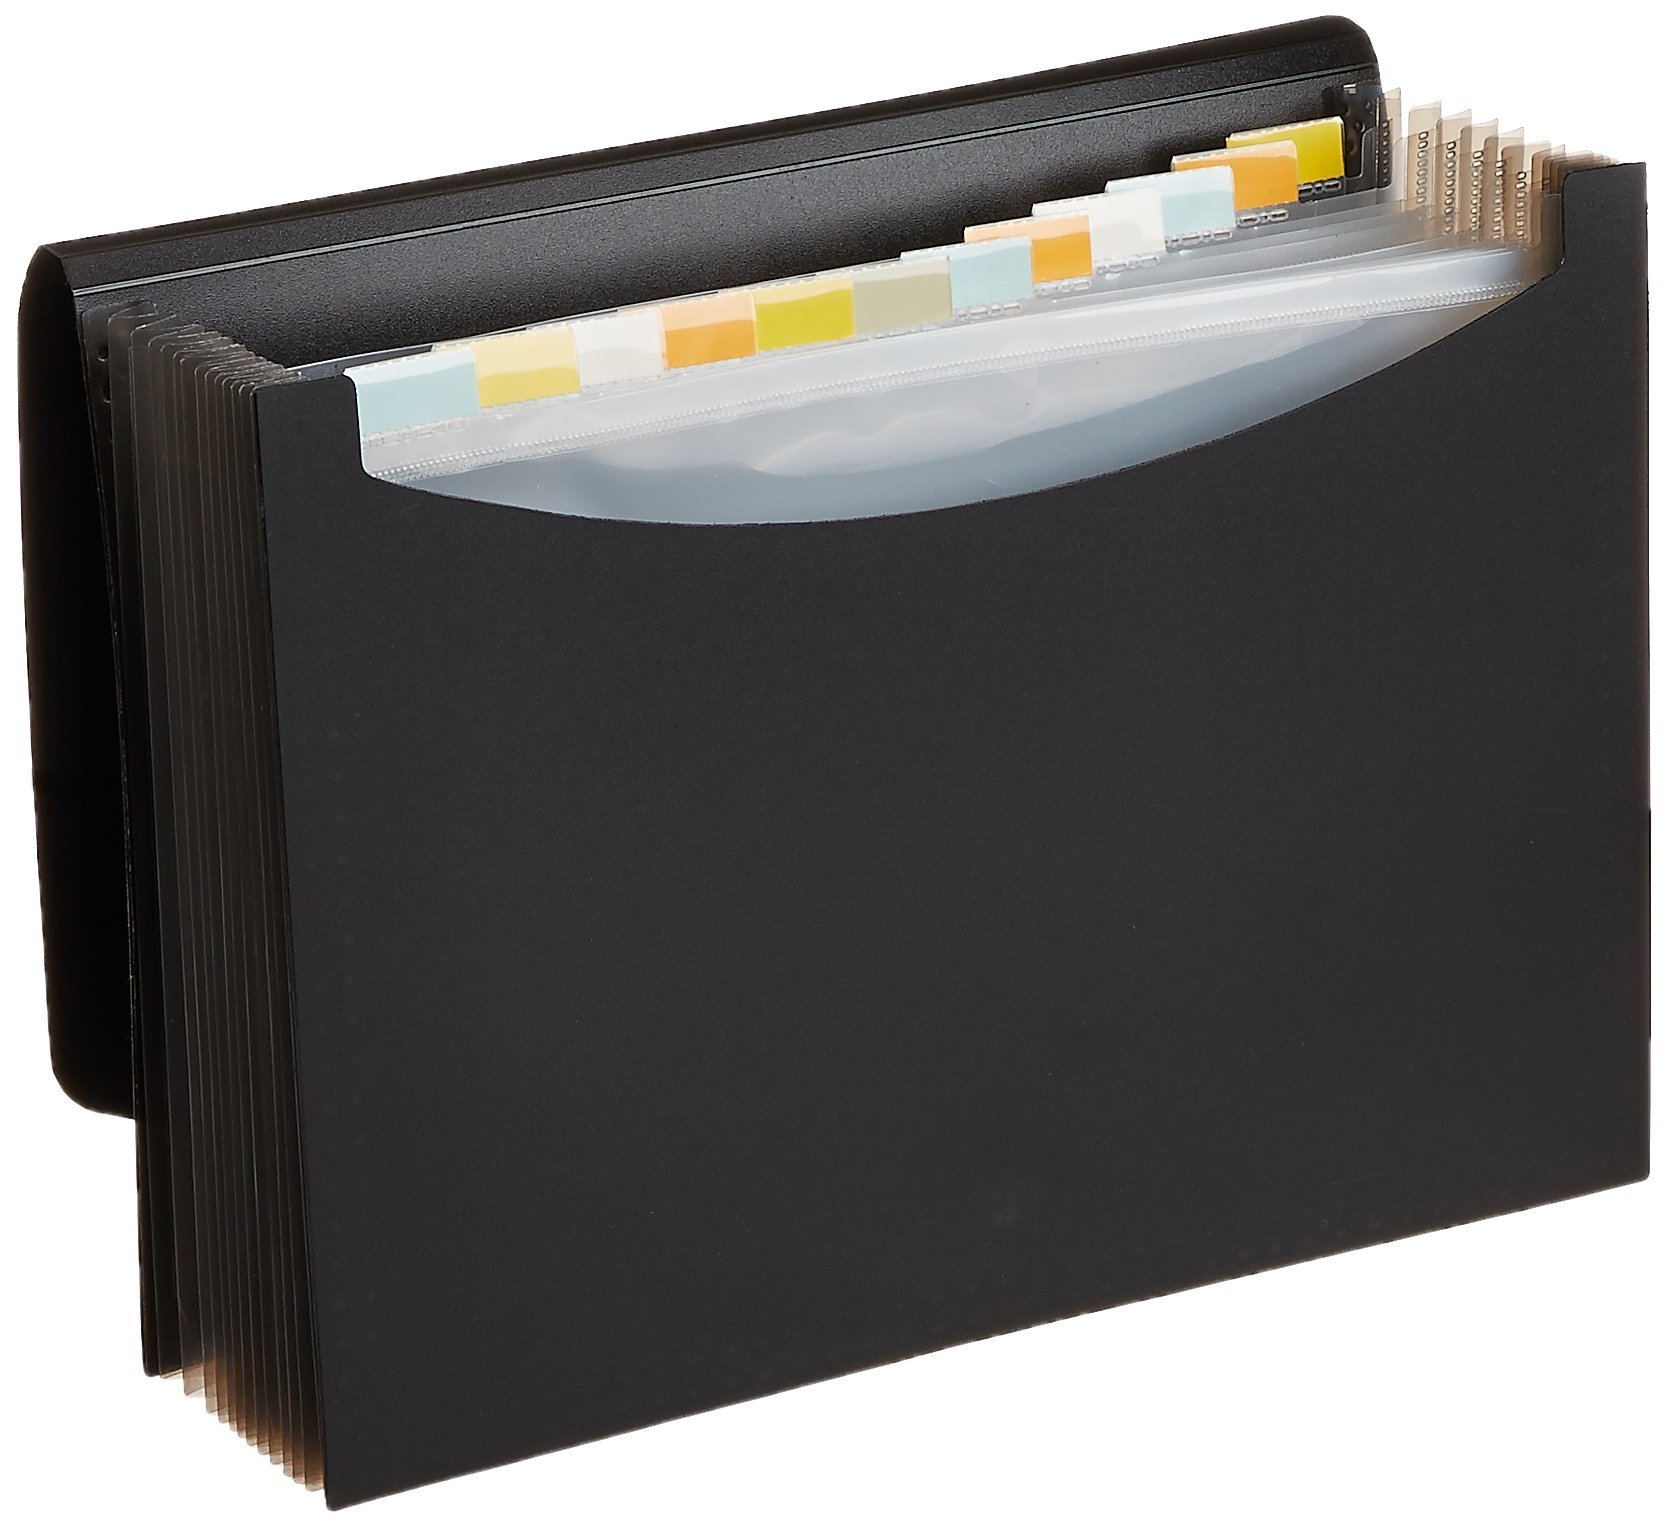 AmazonBasics Expanding File Folder, Letter Size (Fits A4 Paper) - Black - with 13 pockets product image